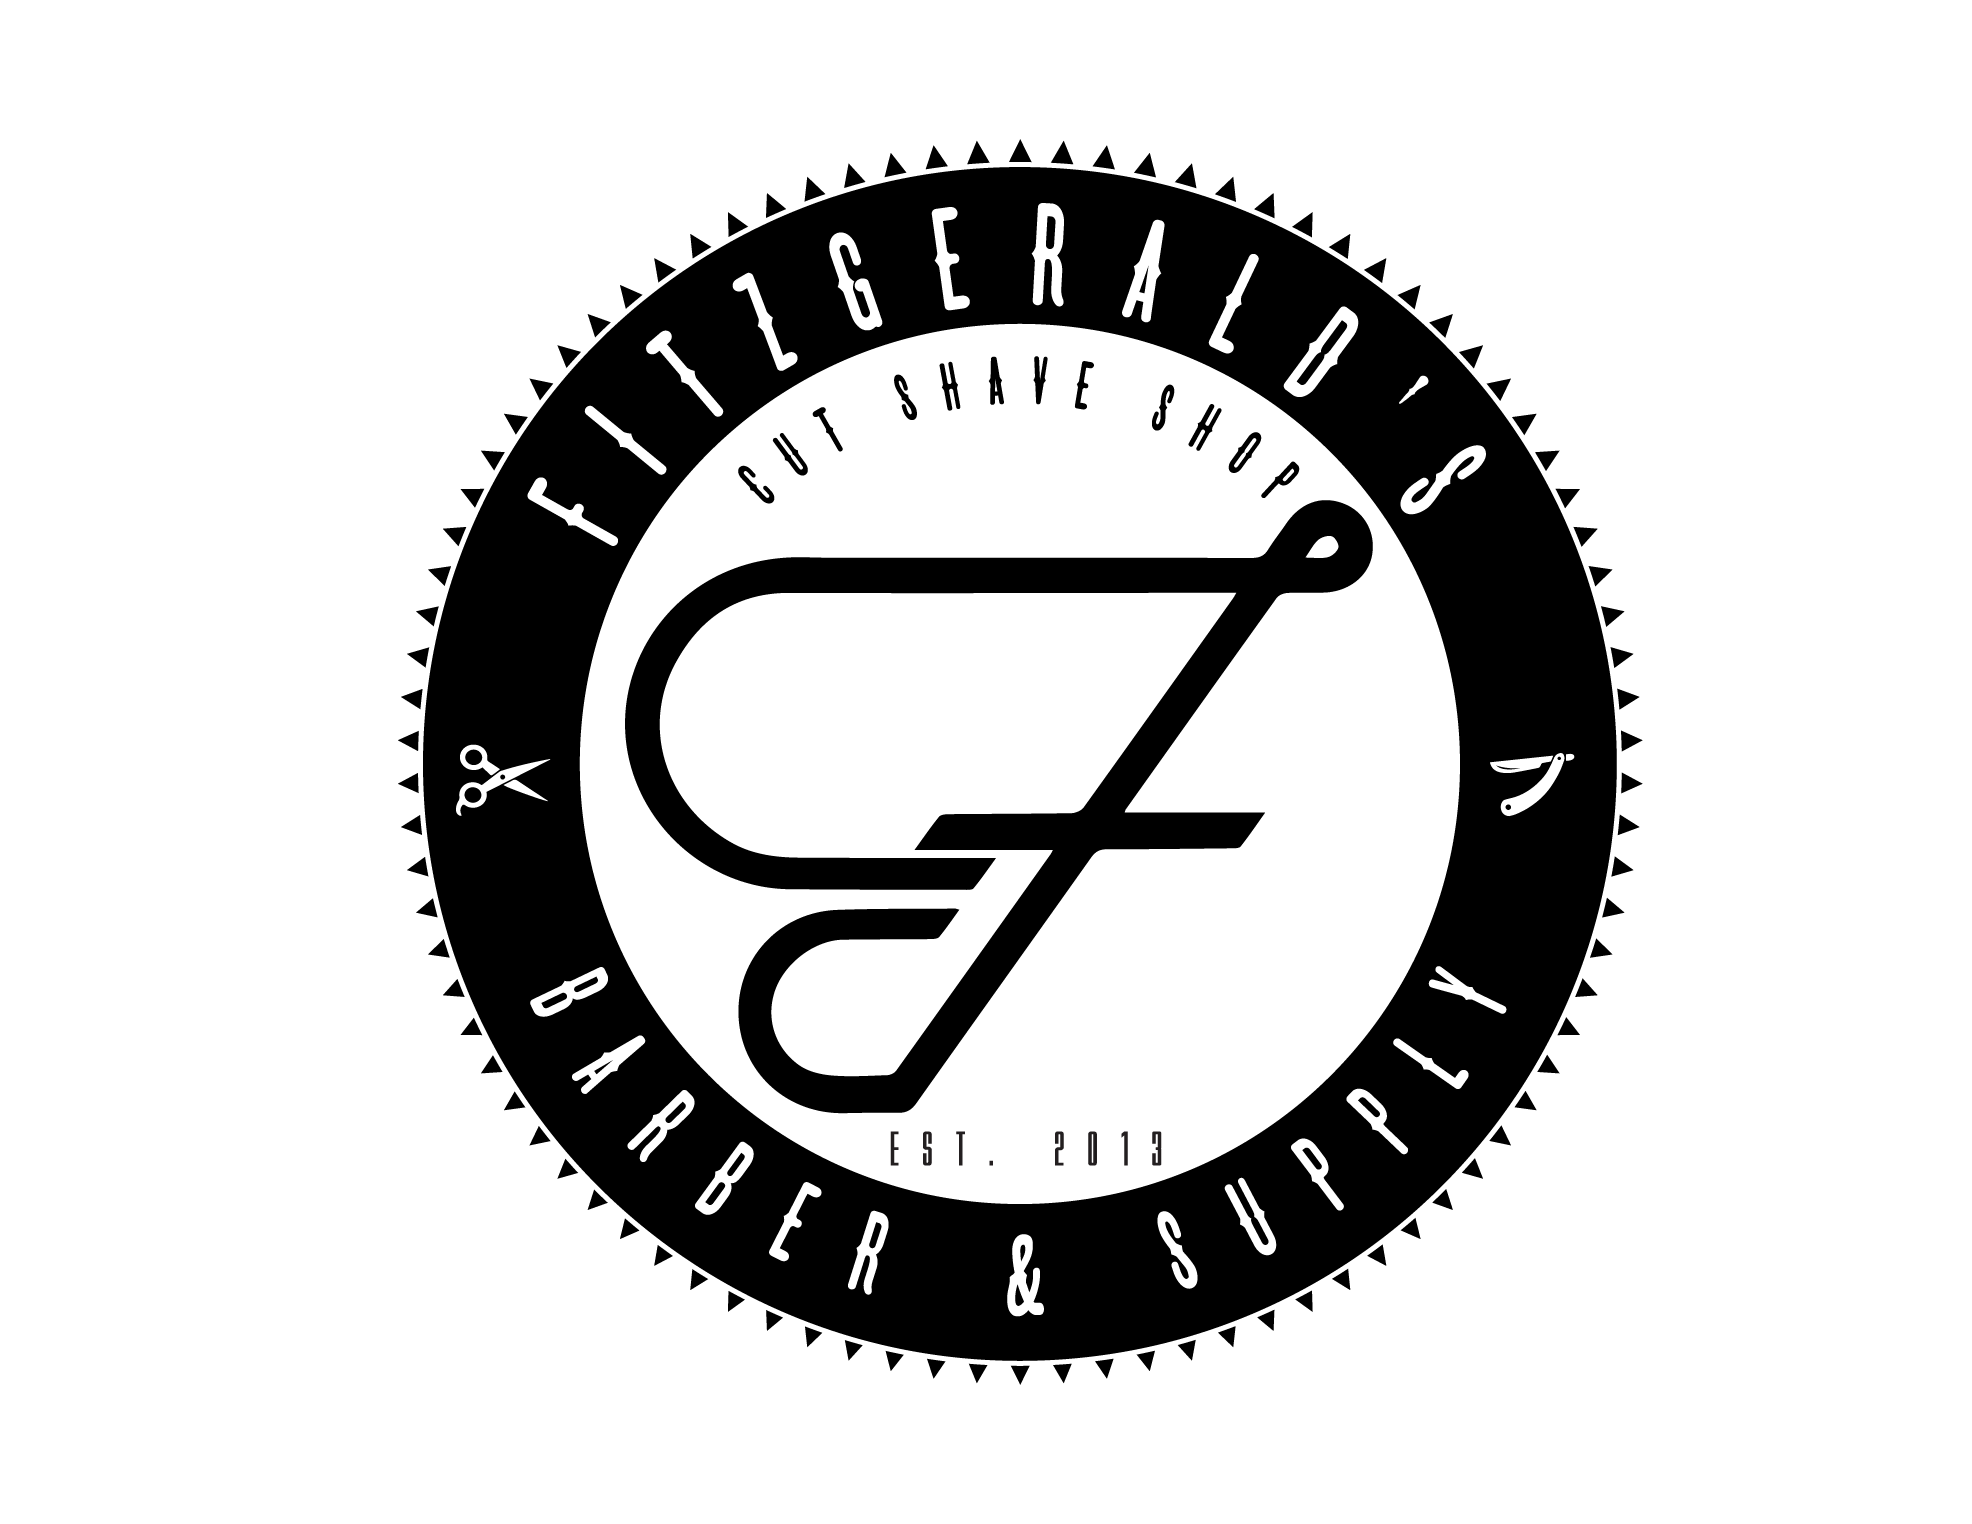 FITZGERAL-LOGO.png